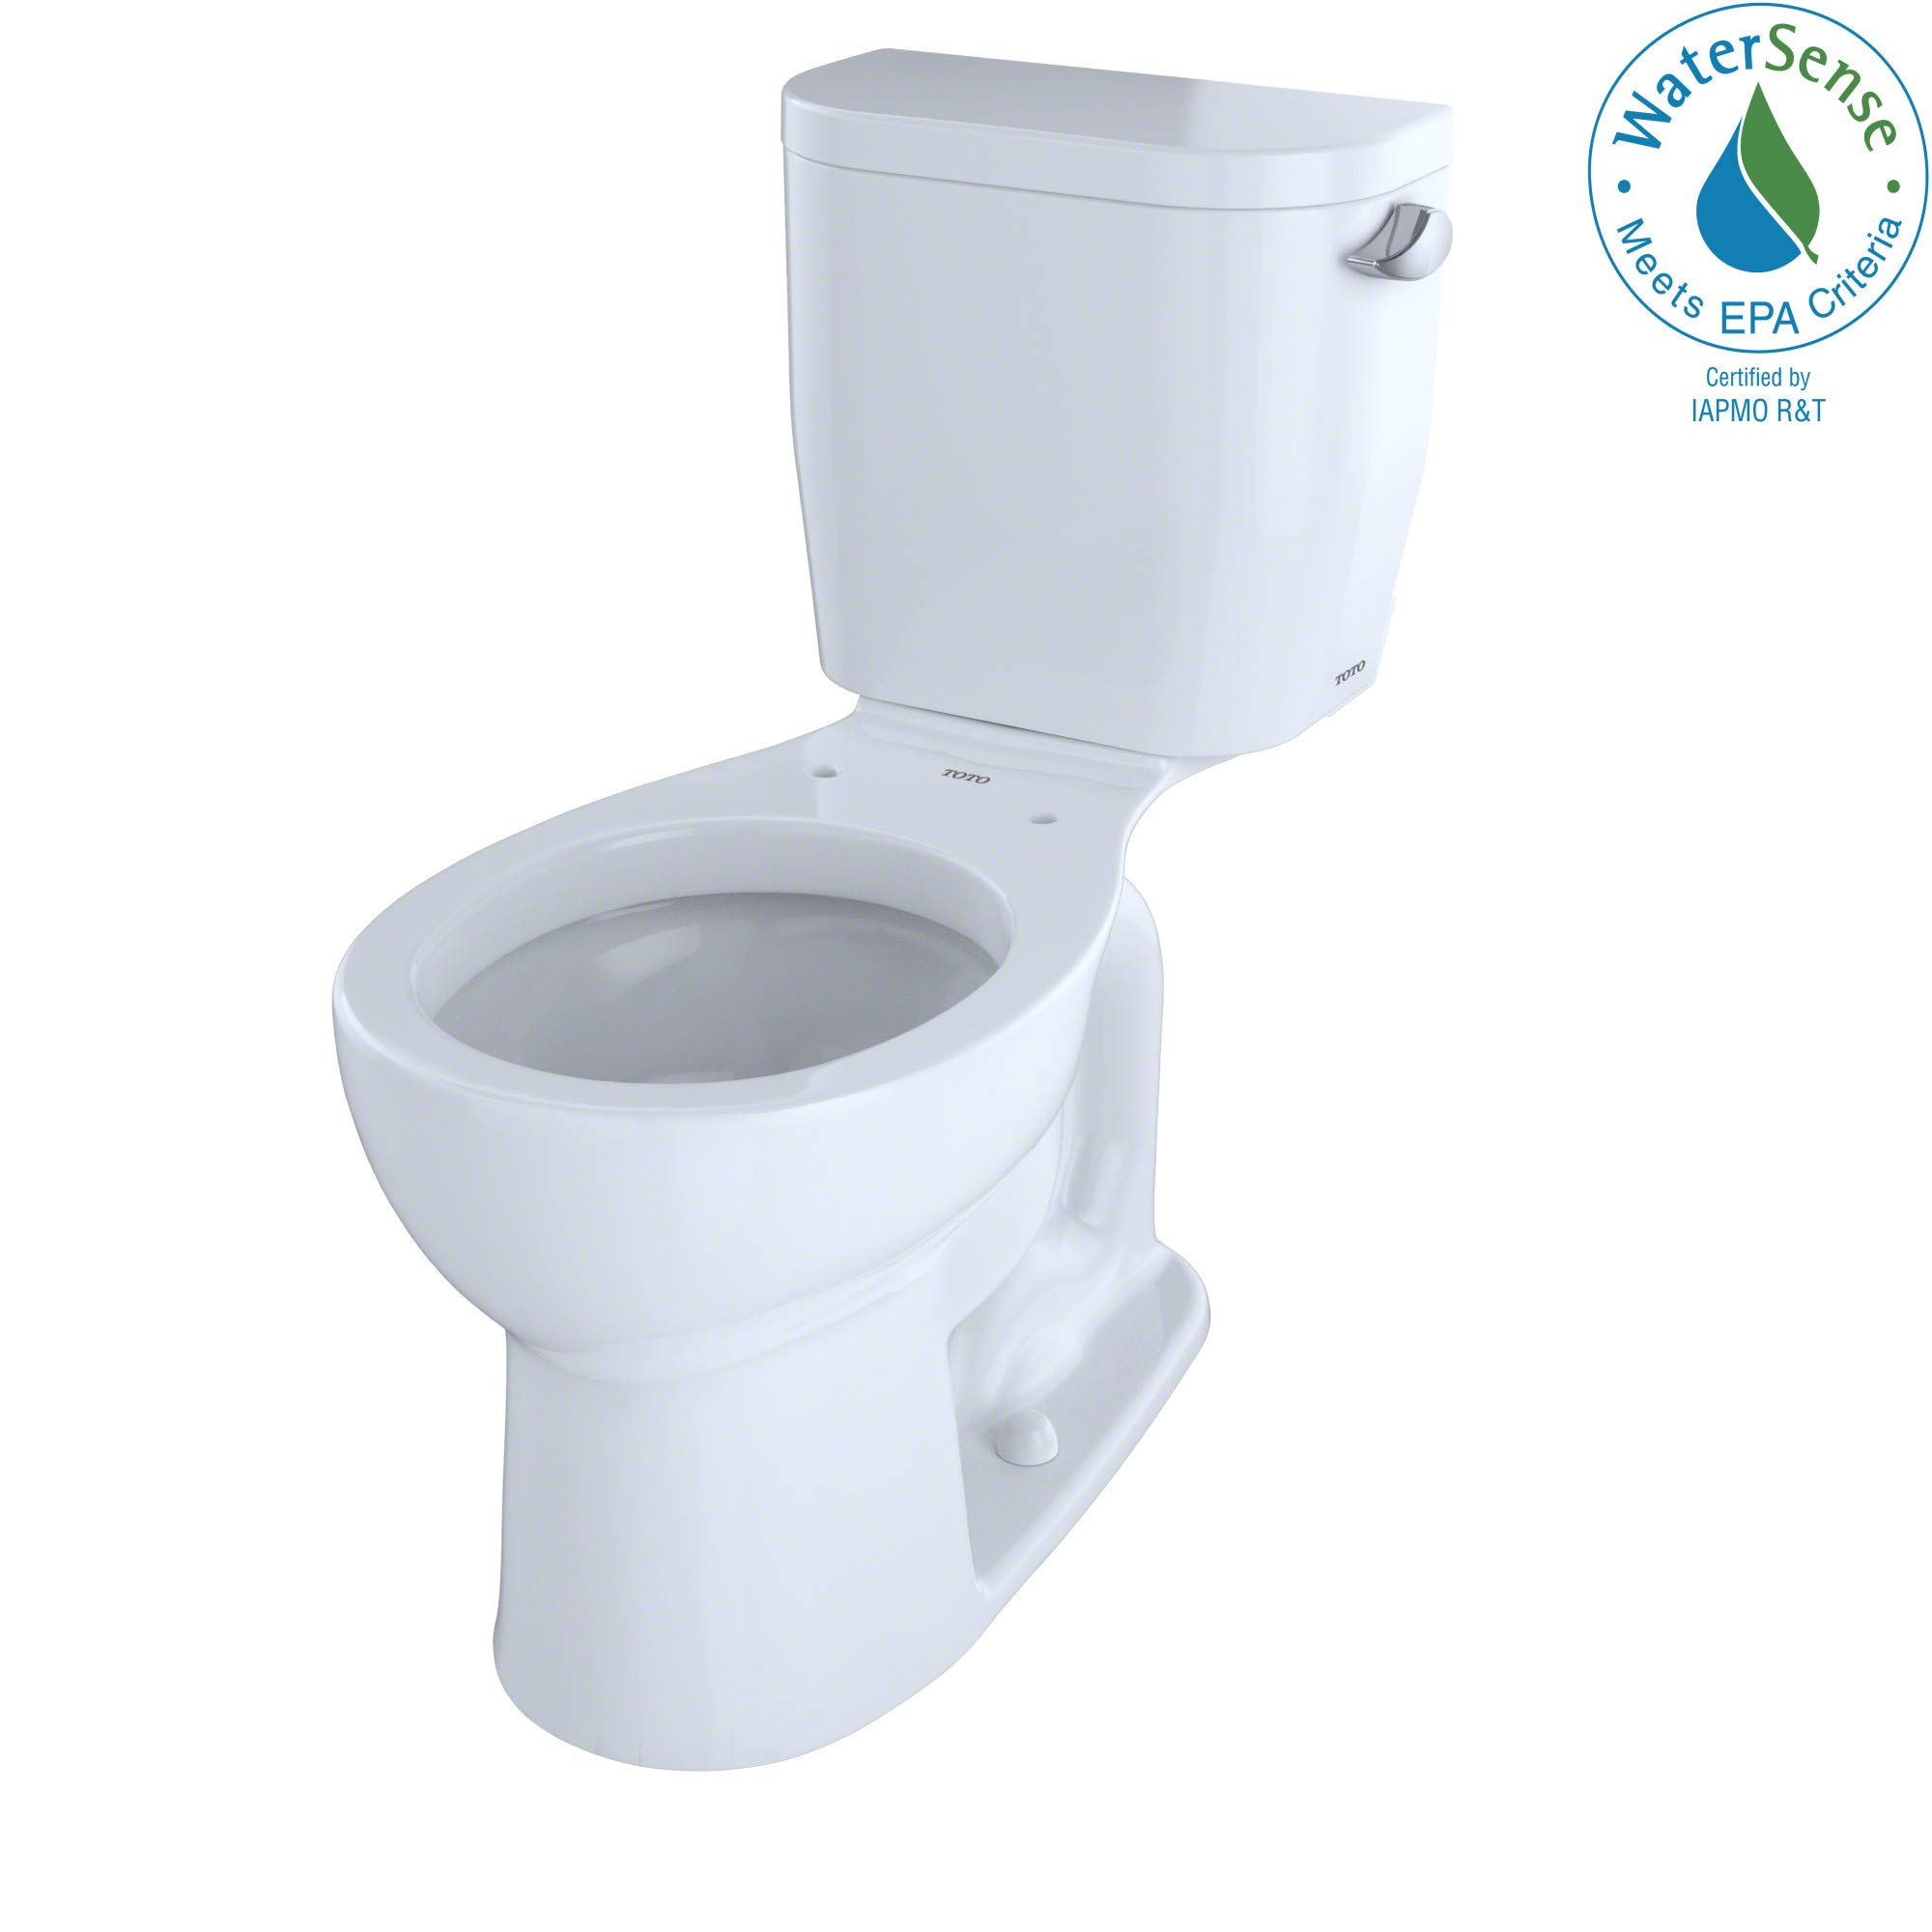 TOTO CST243EFR#01 Entrada Two-Piece Round 1.28 GPF Universal Height Toilet with Right-Hand Trip Lever, Cotton White by TOTO